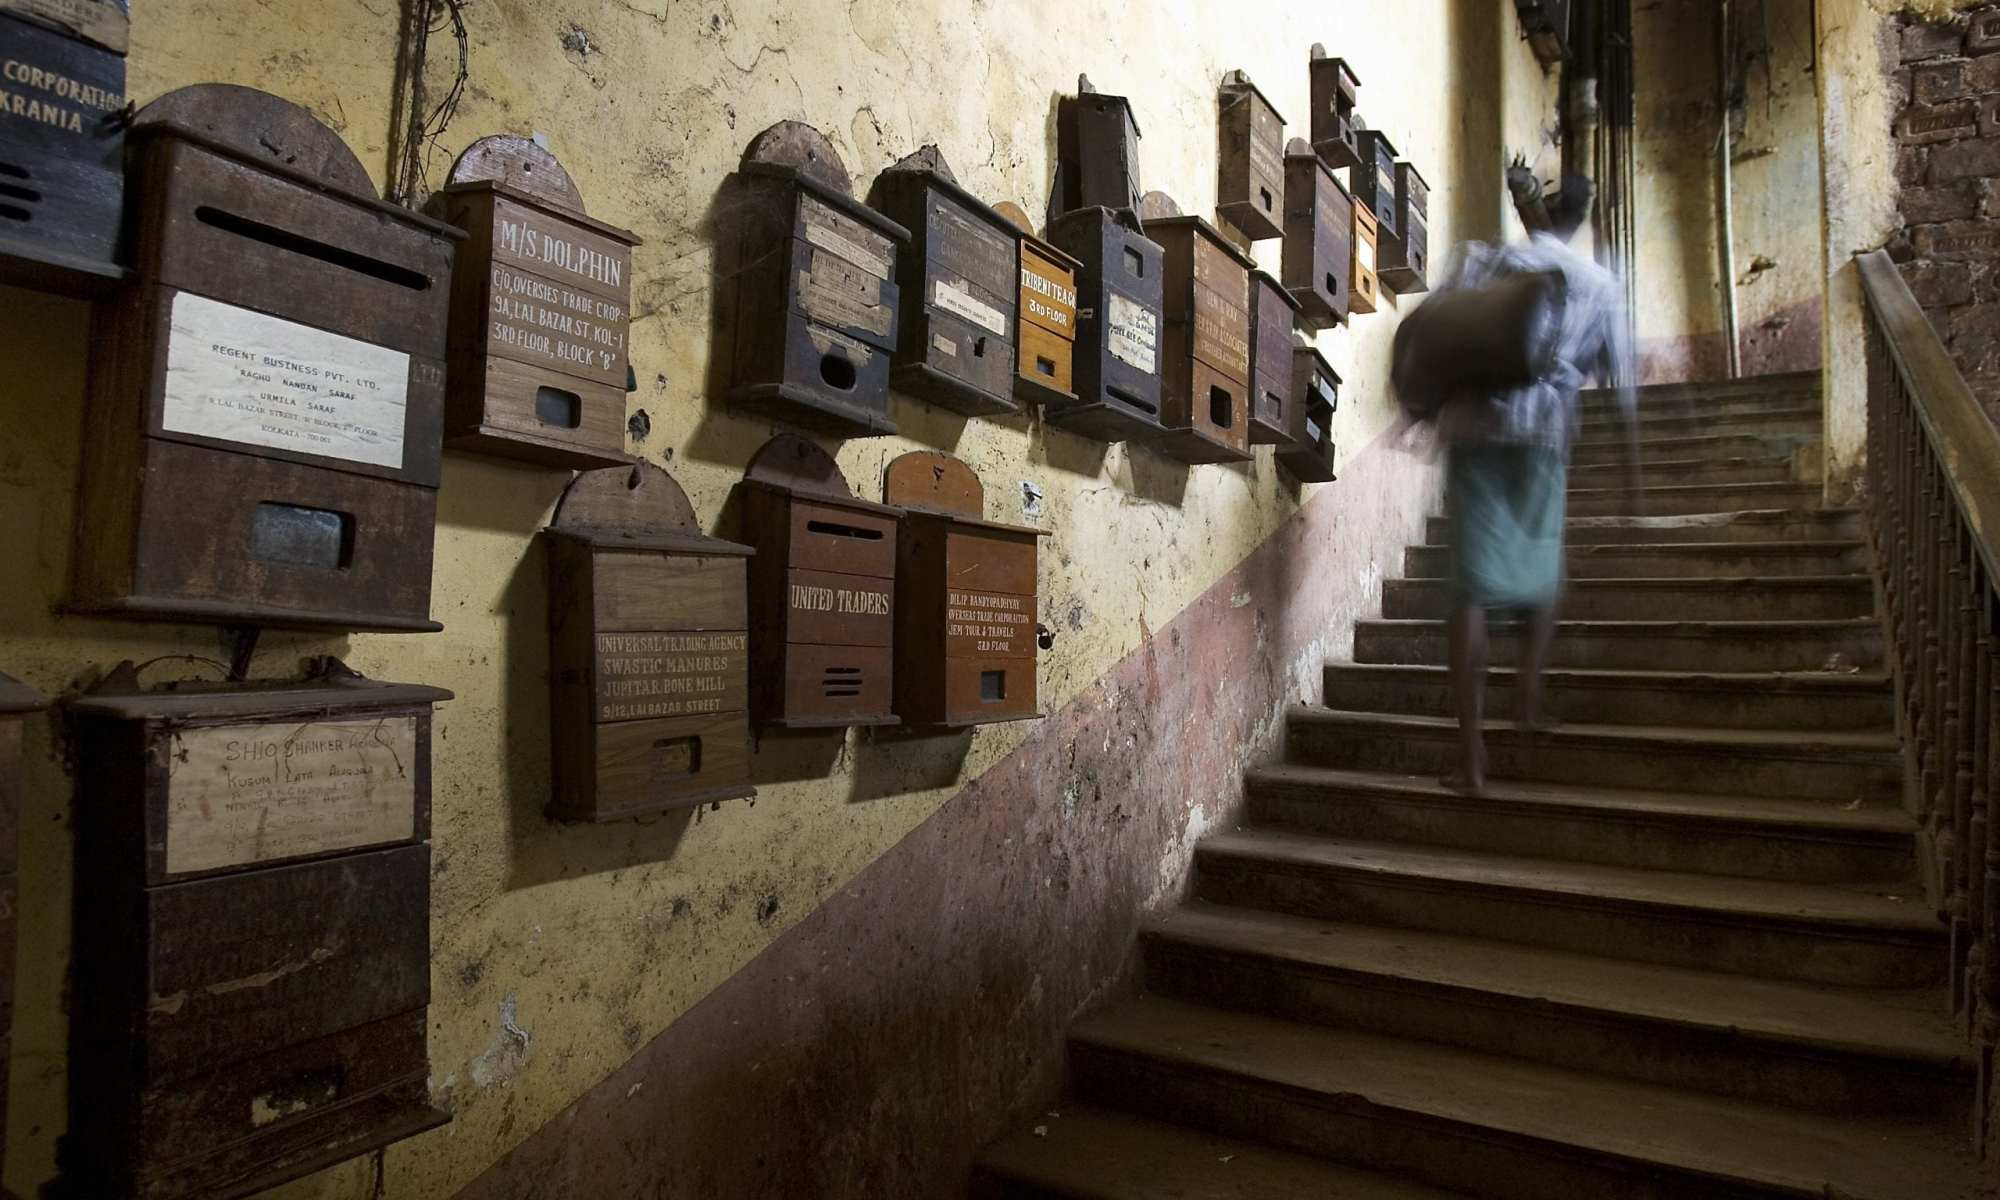 Mailboxes in stairs, Calcutta Kolkata India